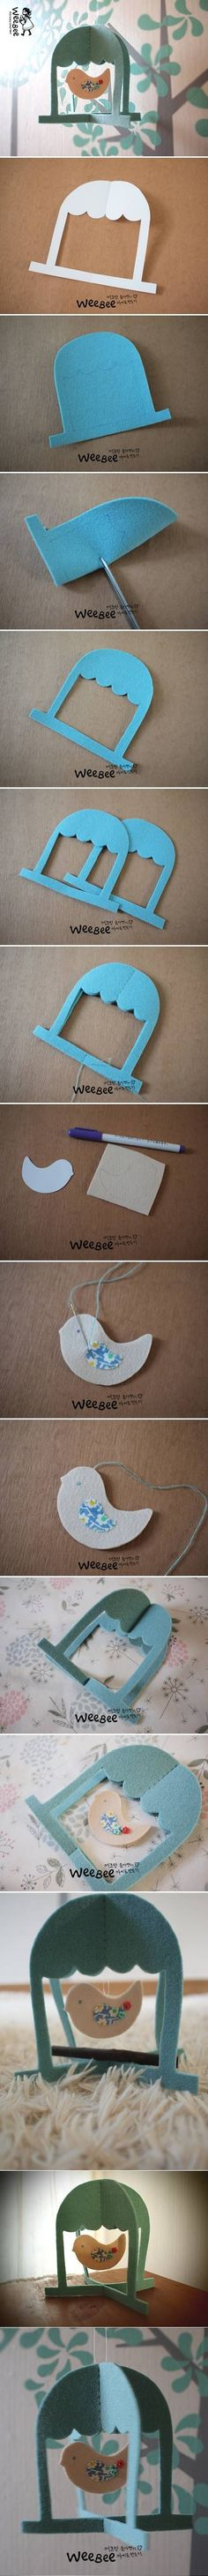 How to make Cute Felt Bird Mobile step by step DIY tutorial instructions / How To Instructions